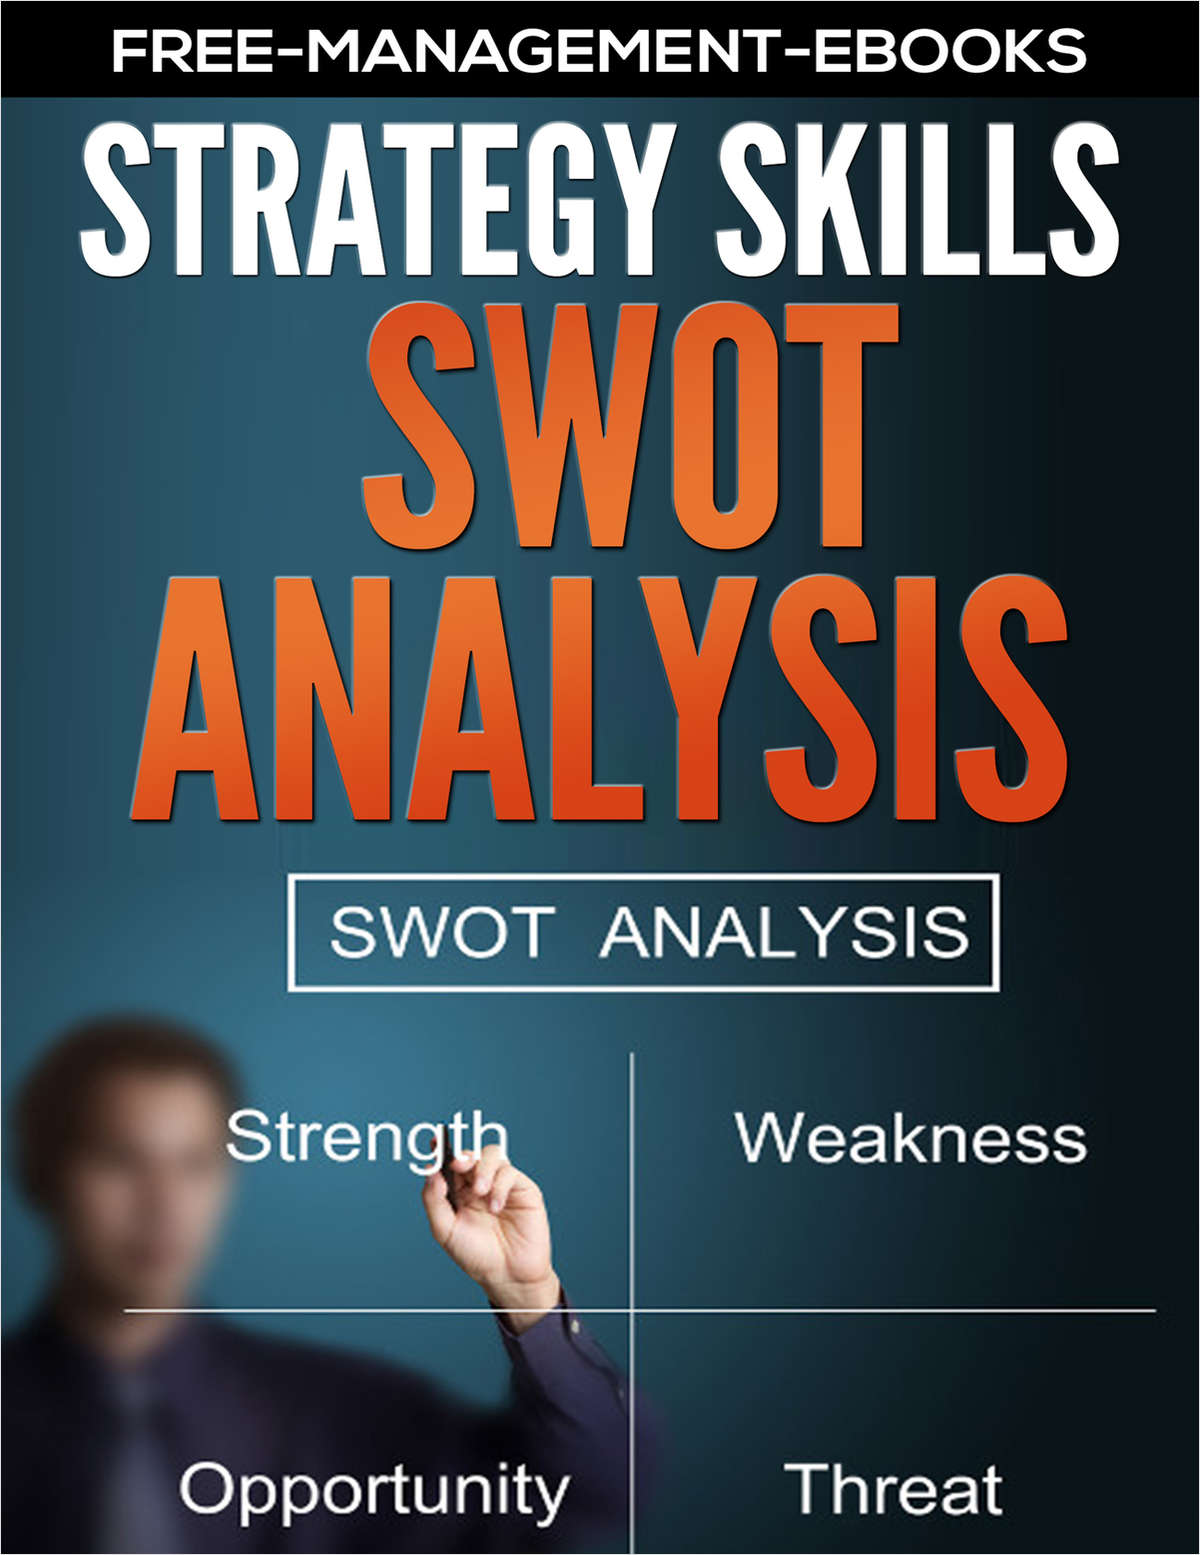 SWOT Analysis -- Developing Your Strategy Skills